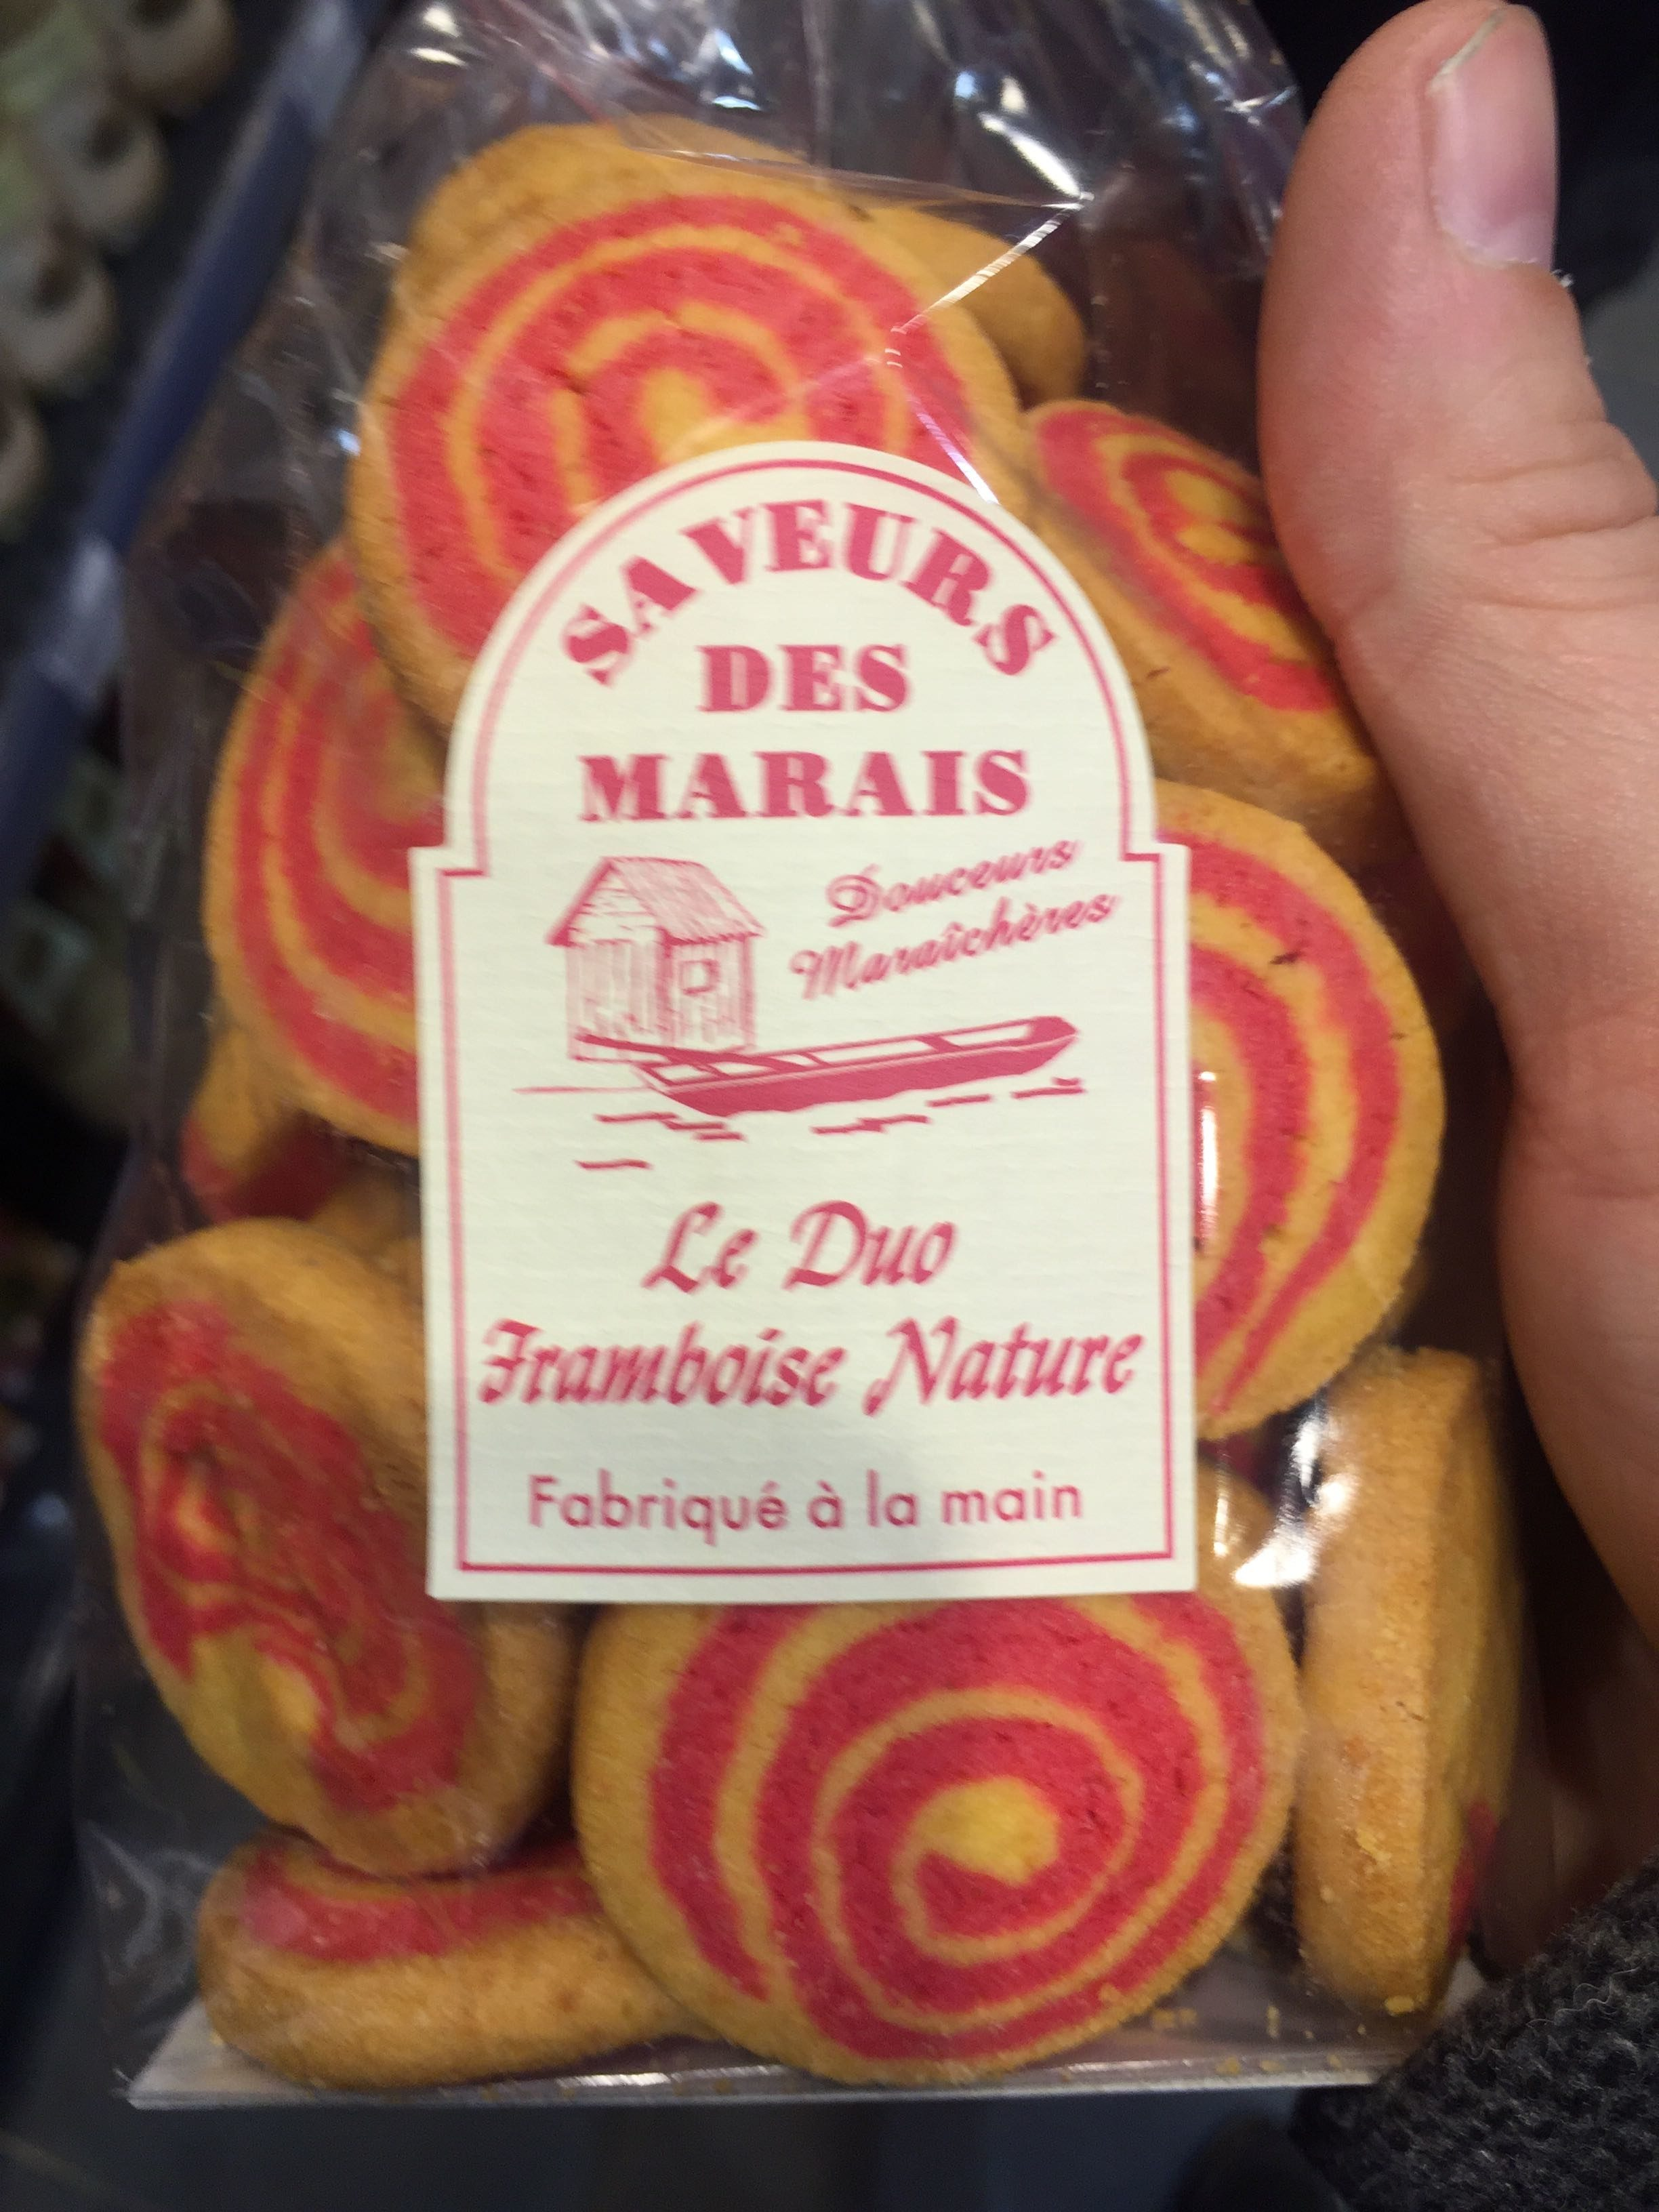 Le Duo Framboise Nature - Product